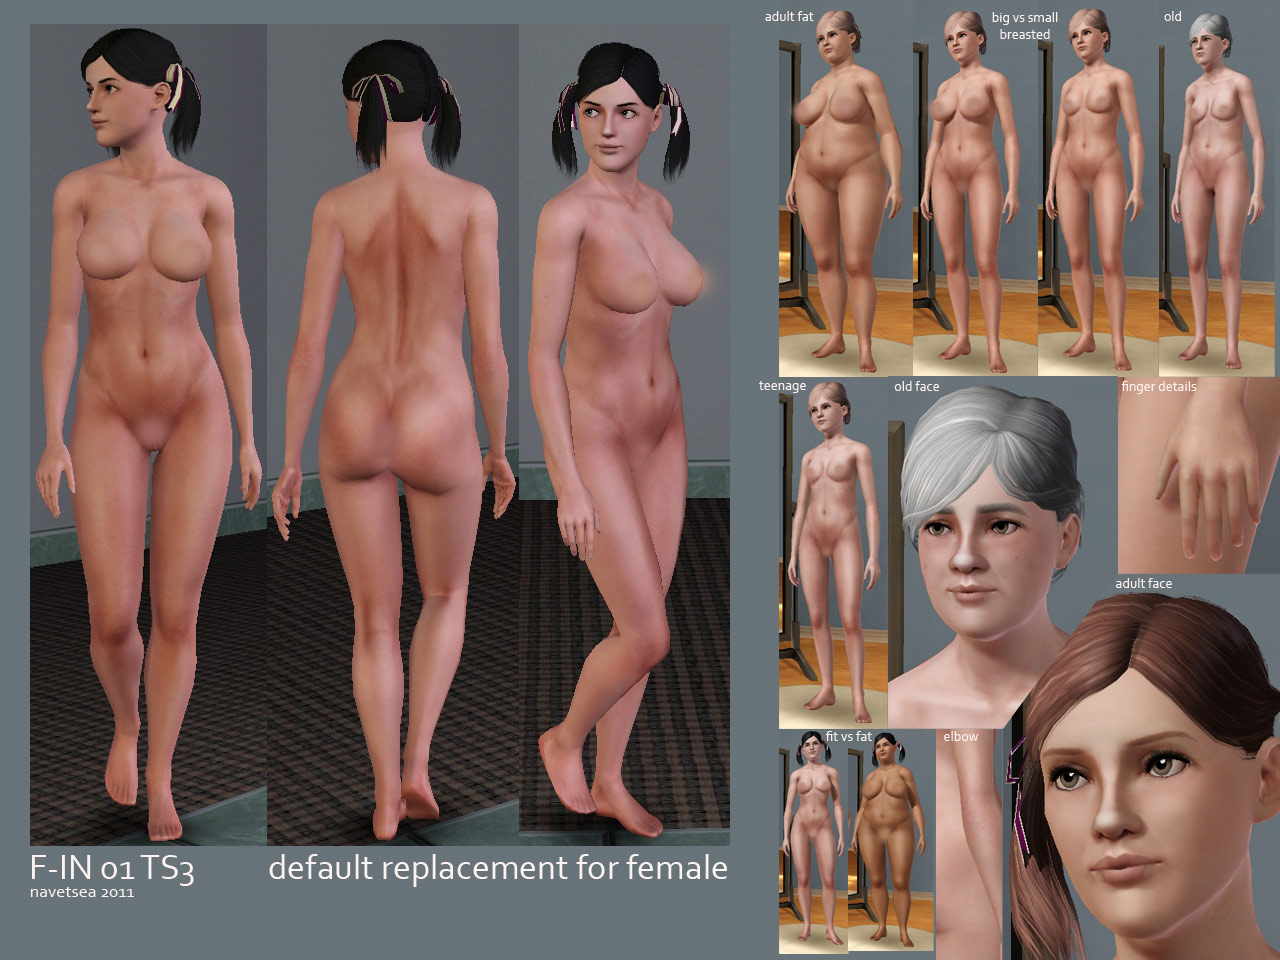 The sims nude patch download erotic scenes